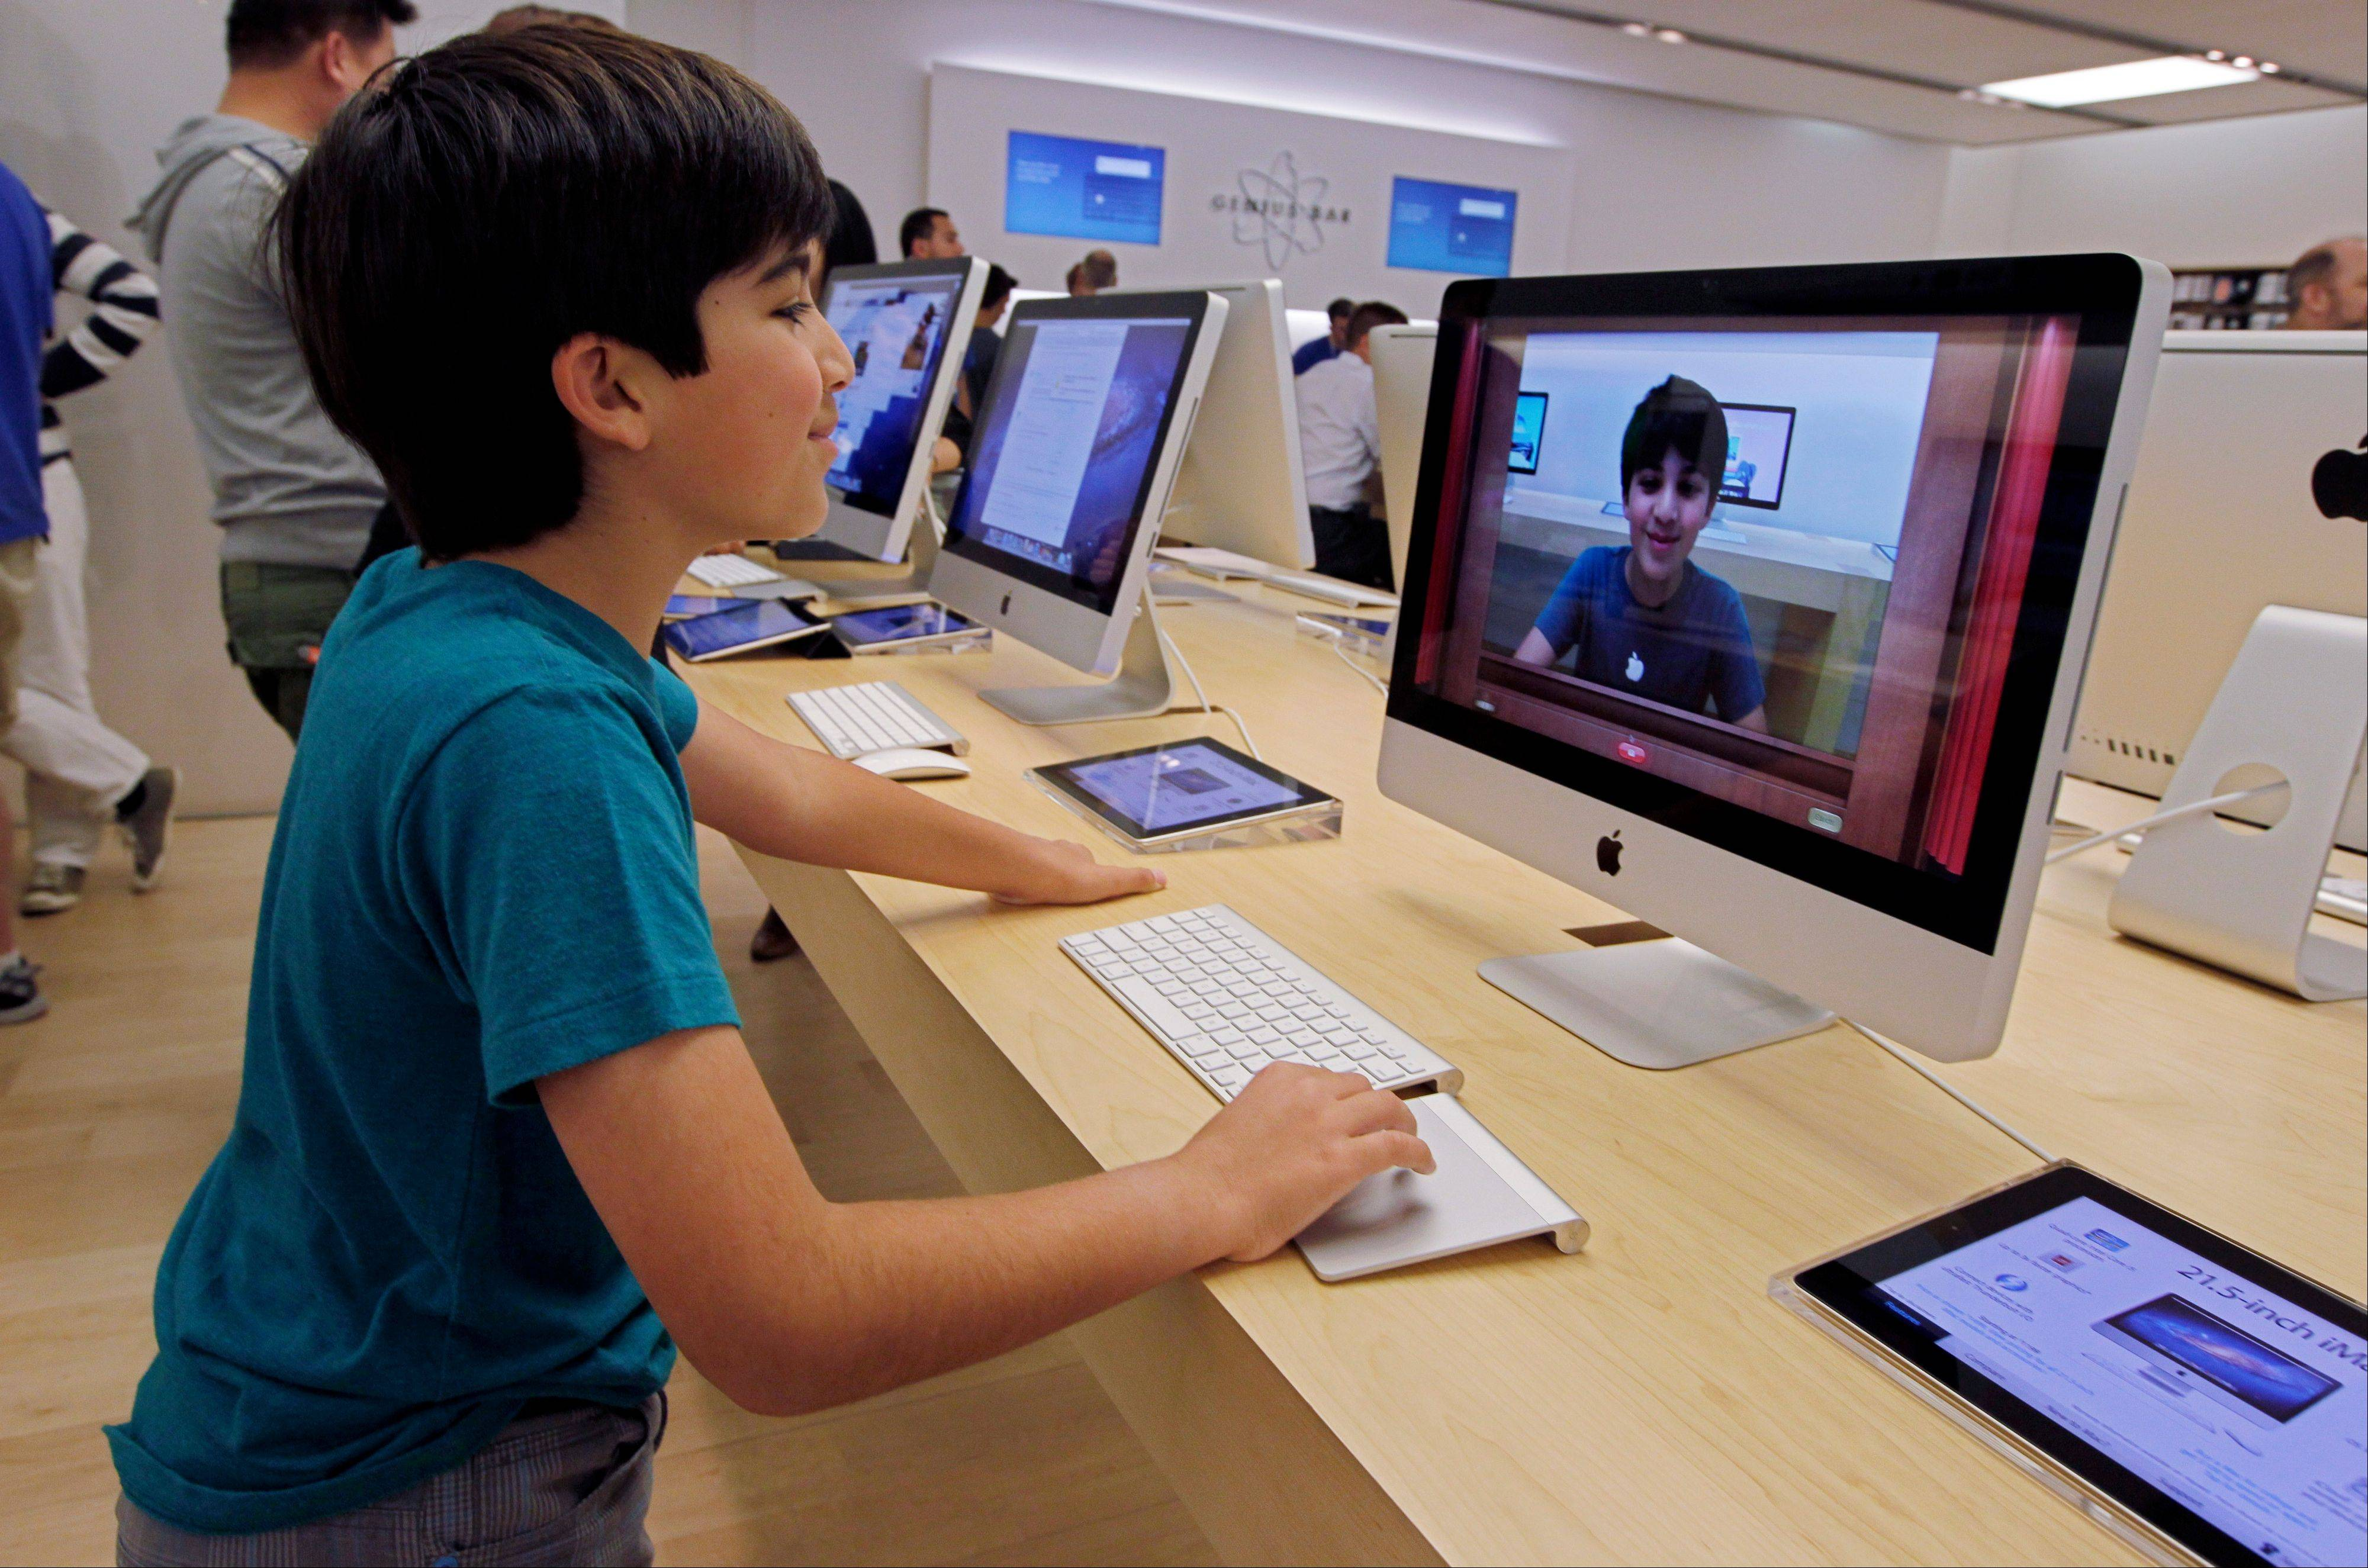 An Apple customer Shayan Hooshmand, 11, uses PhotoBooth on a 21.5-inch iMac at an Apple store in Palo Alto, Calif.